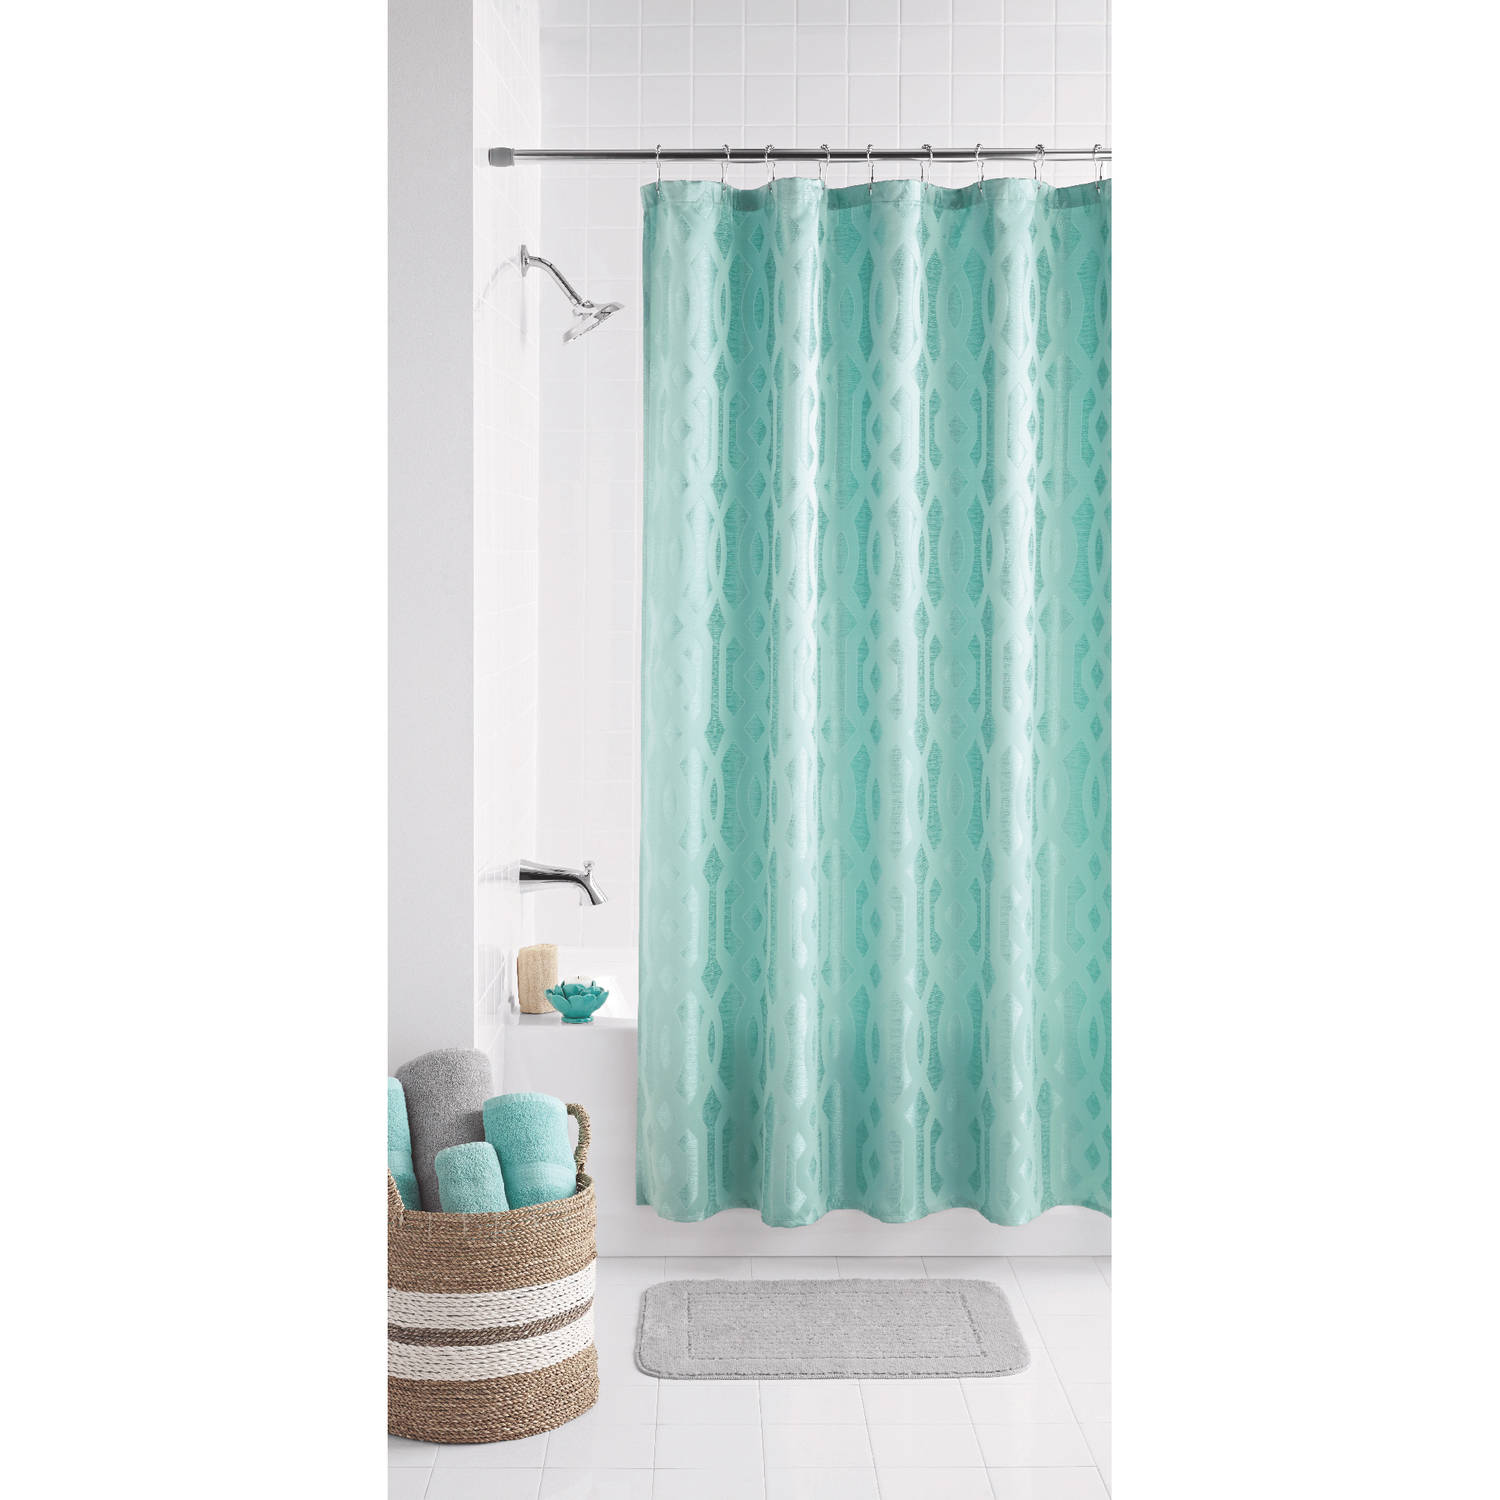 Mainstays Geo Jacquard Fabric Shower Curtain by Keeco